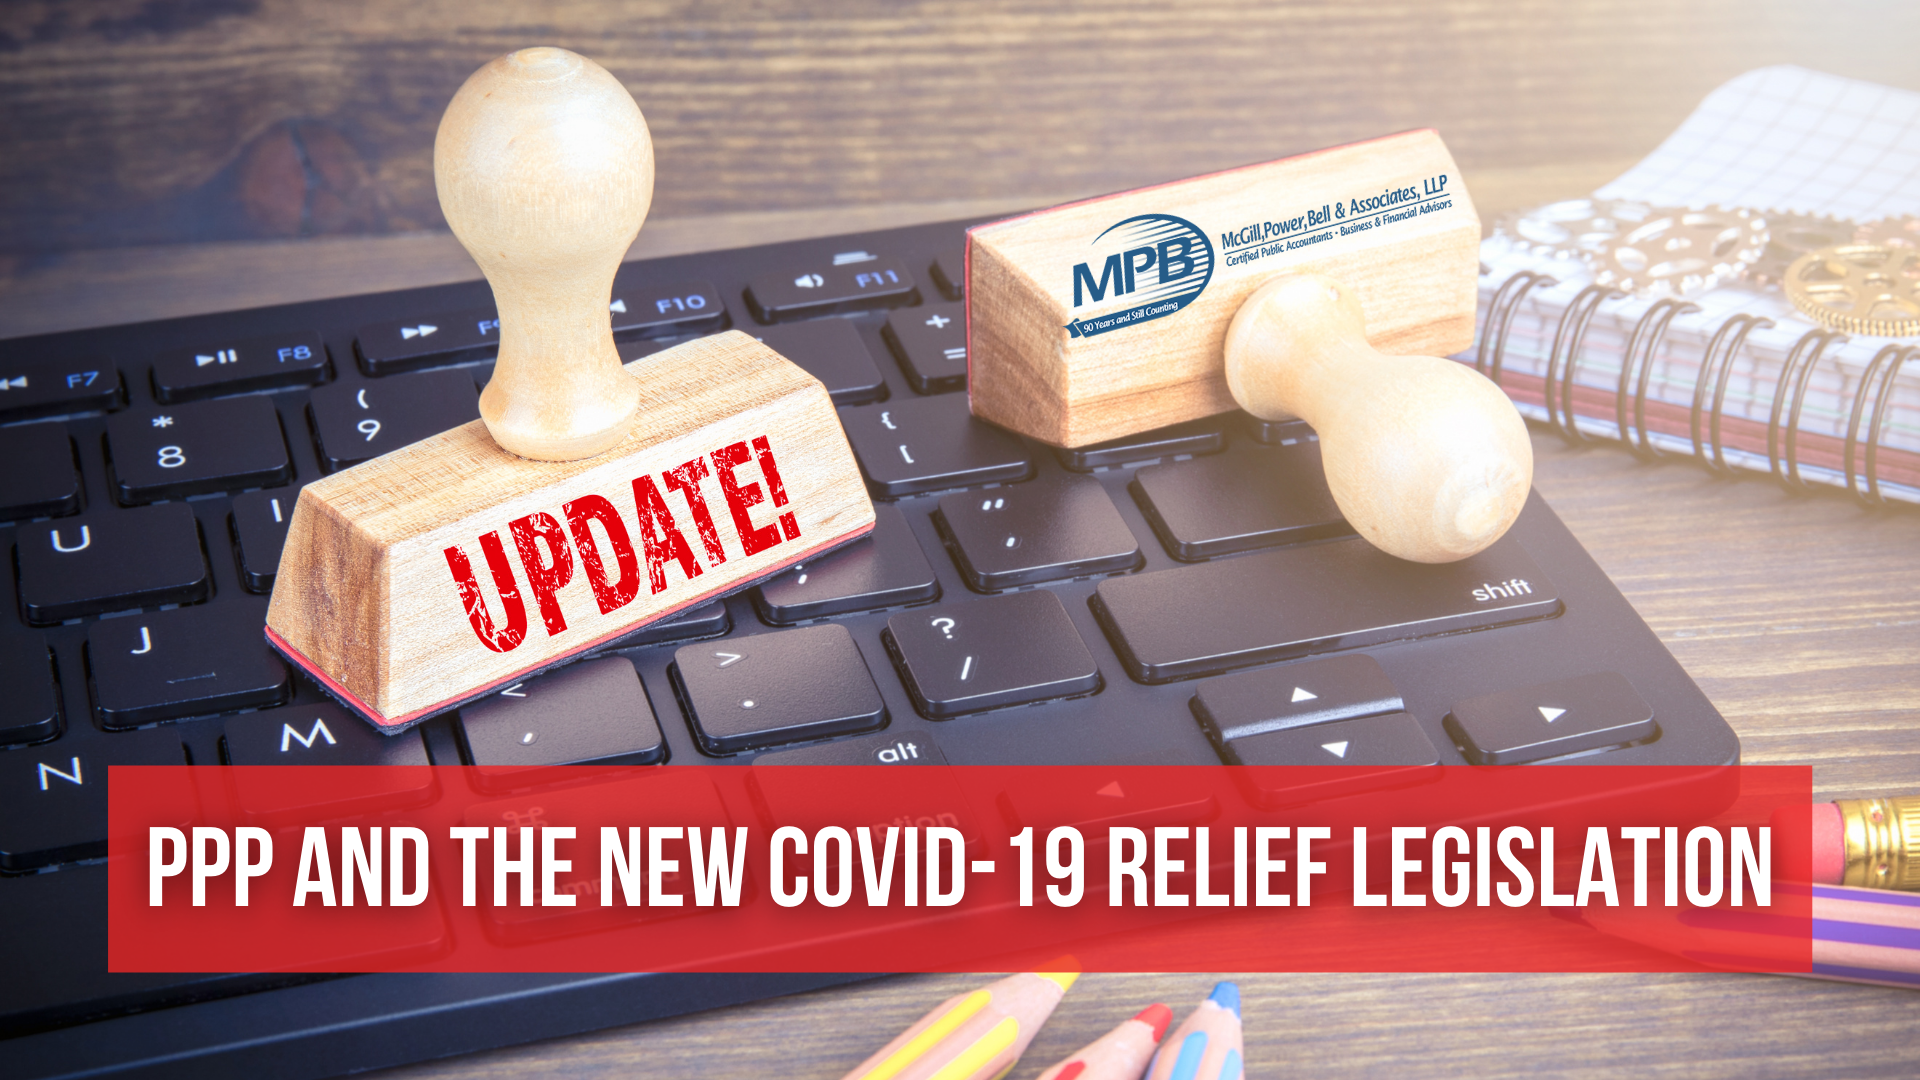 [Zoom Meeting] PPP and the New COVID-19 Relief Legislation